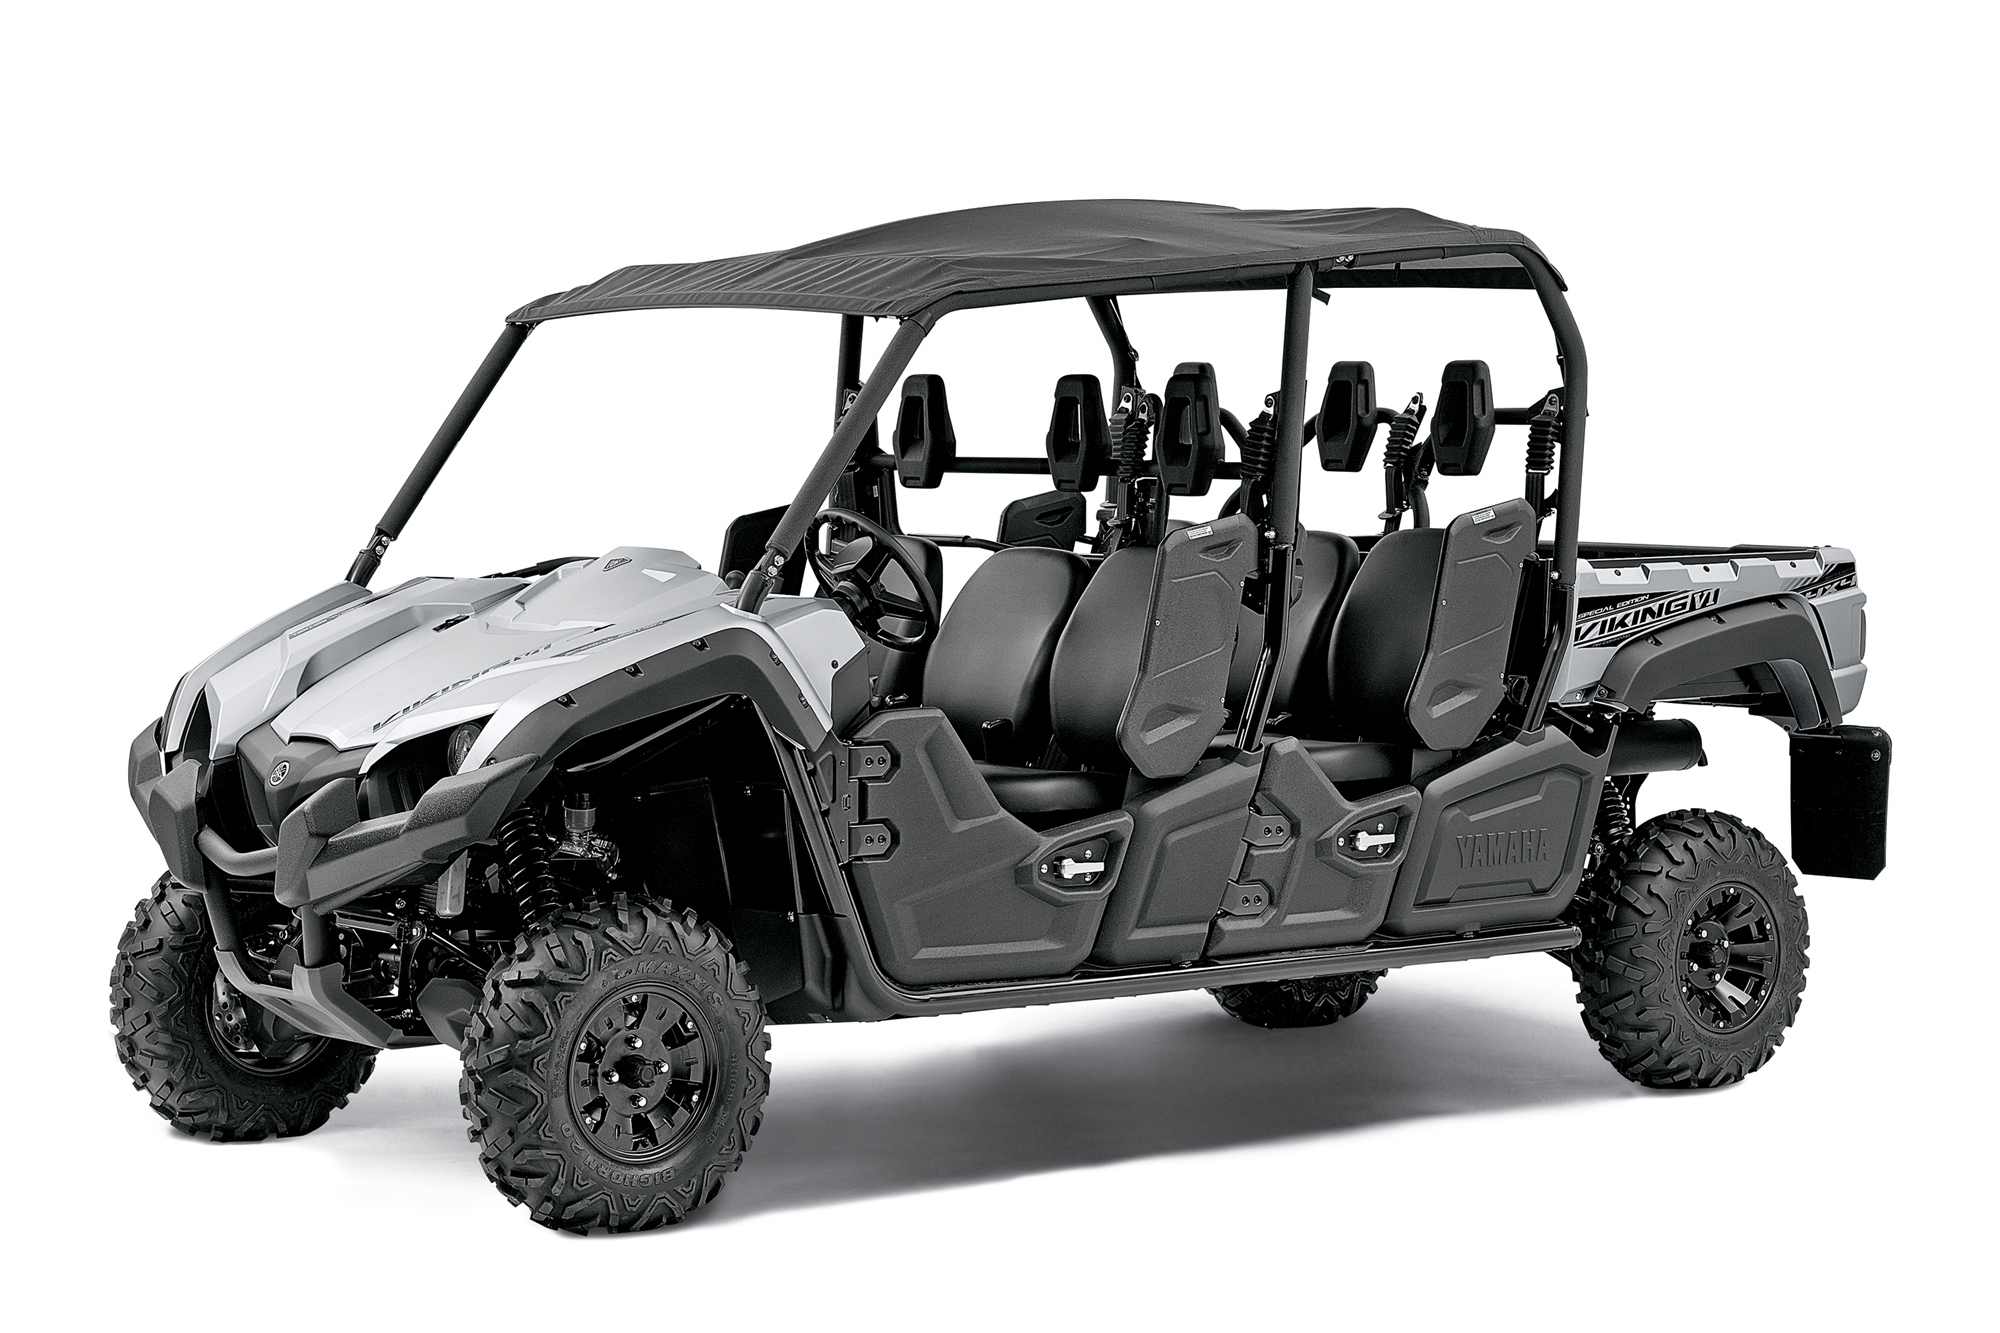 Yamaha shows the 2014 viking vi 6 seater sxs autoevolution for Yamaha side by side 4 seater